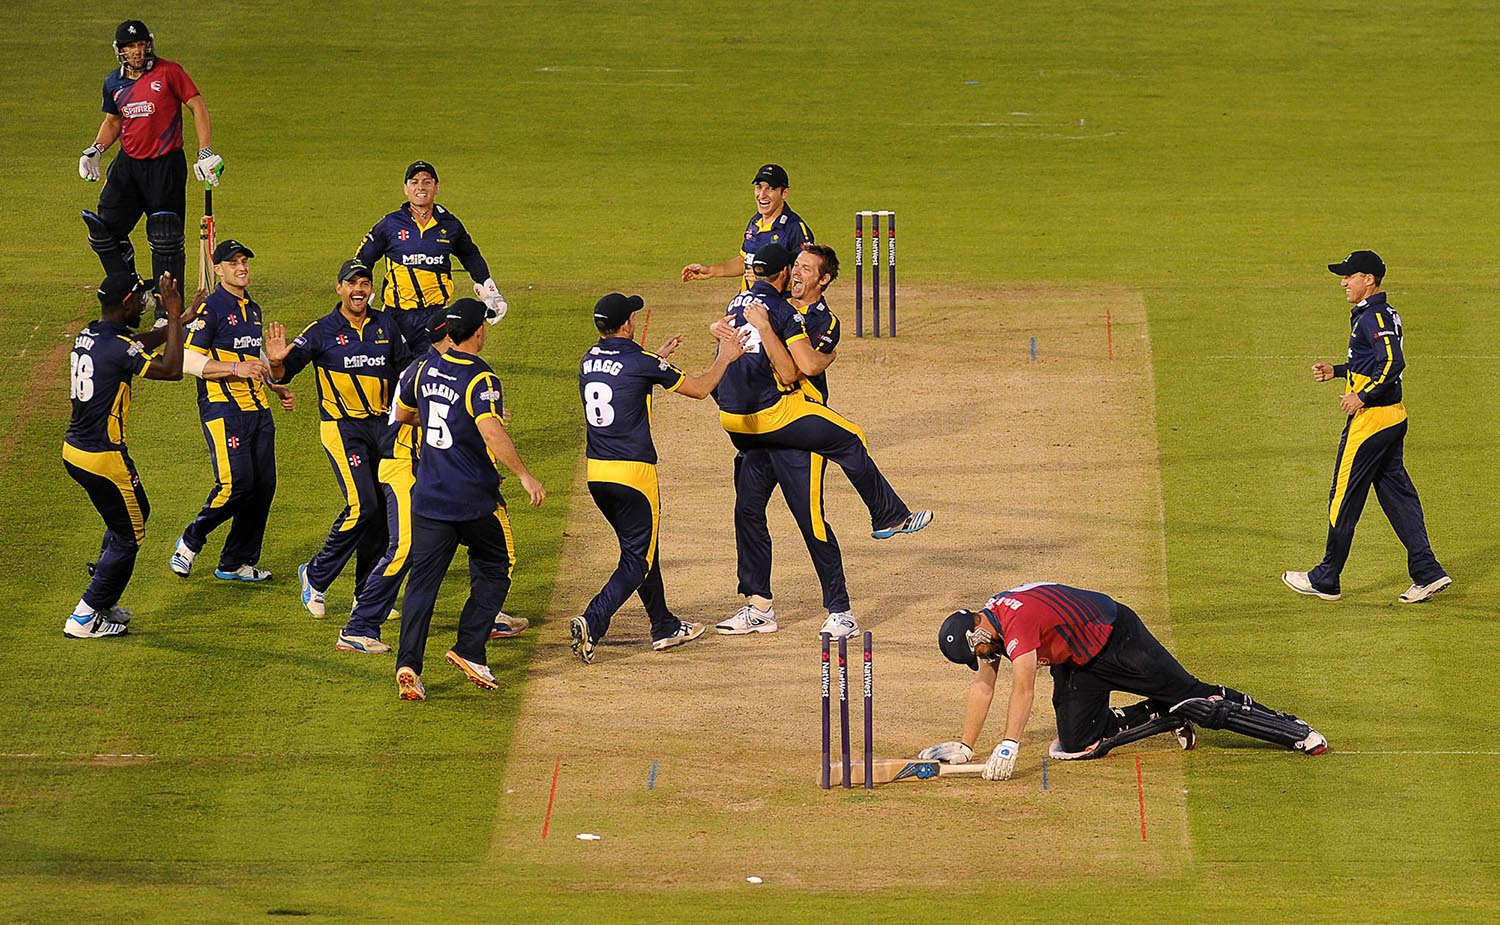 Jacques Rudolph of Glamorgan celebrates after running out Doug Bollinger of Kent to draw the match